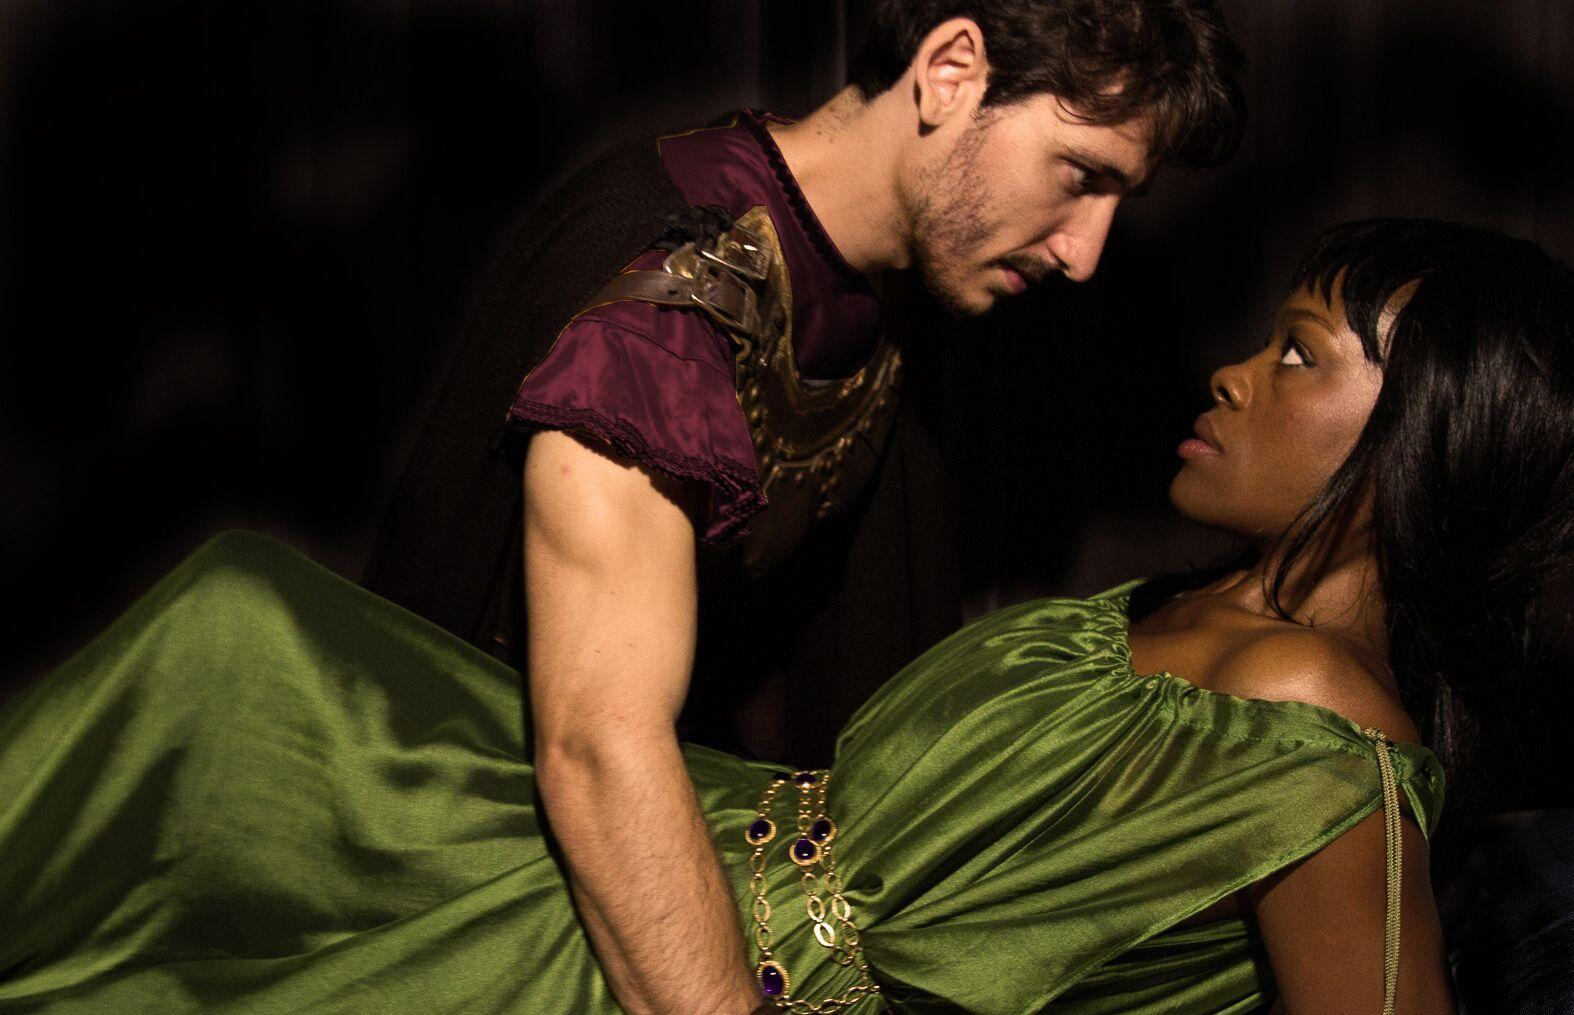 Aaliyah Habeeb and Leighton Samuels portray the Romans Lucrece and Sextus Tarquinius in the New York Shakespeare Exchange's heart-wrenching performance of this Shakespearean classic.